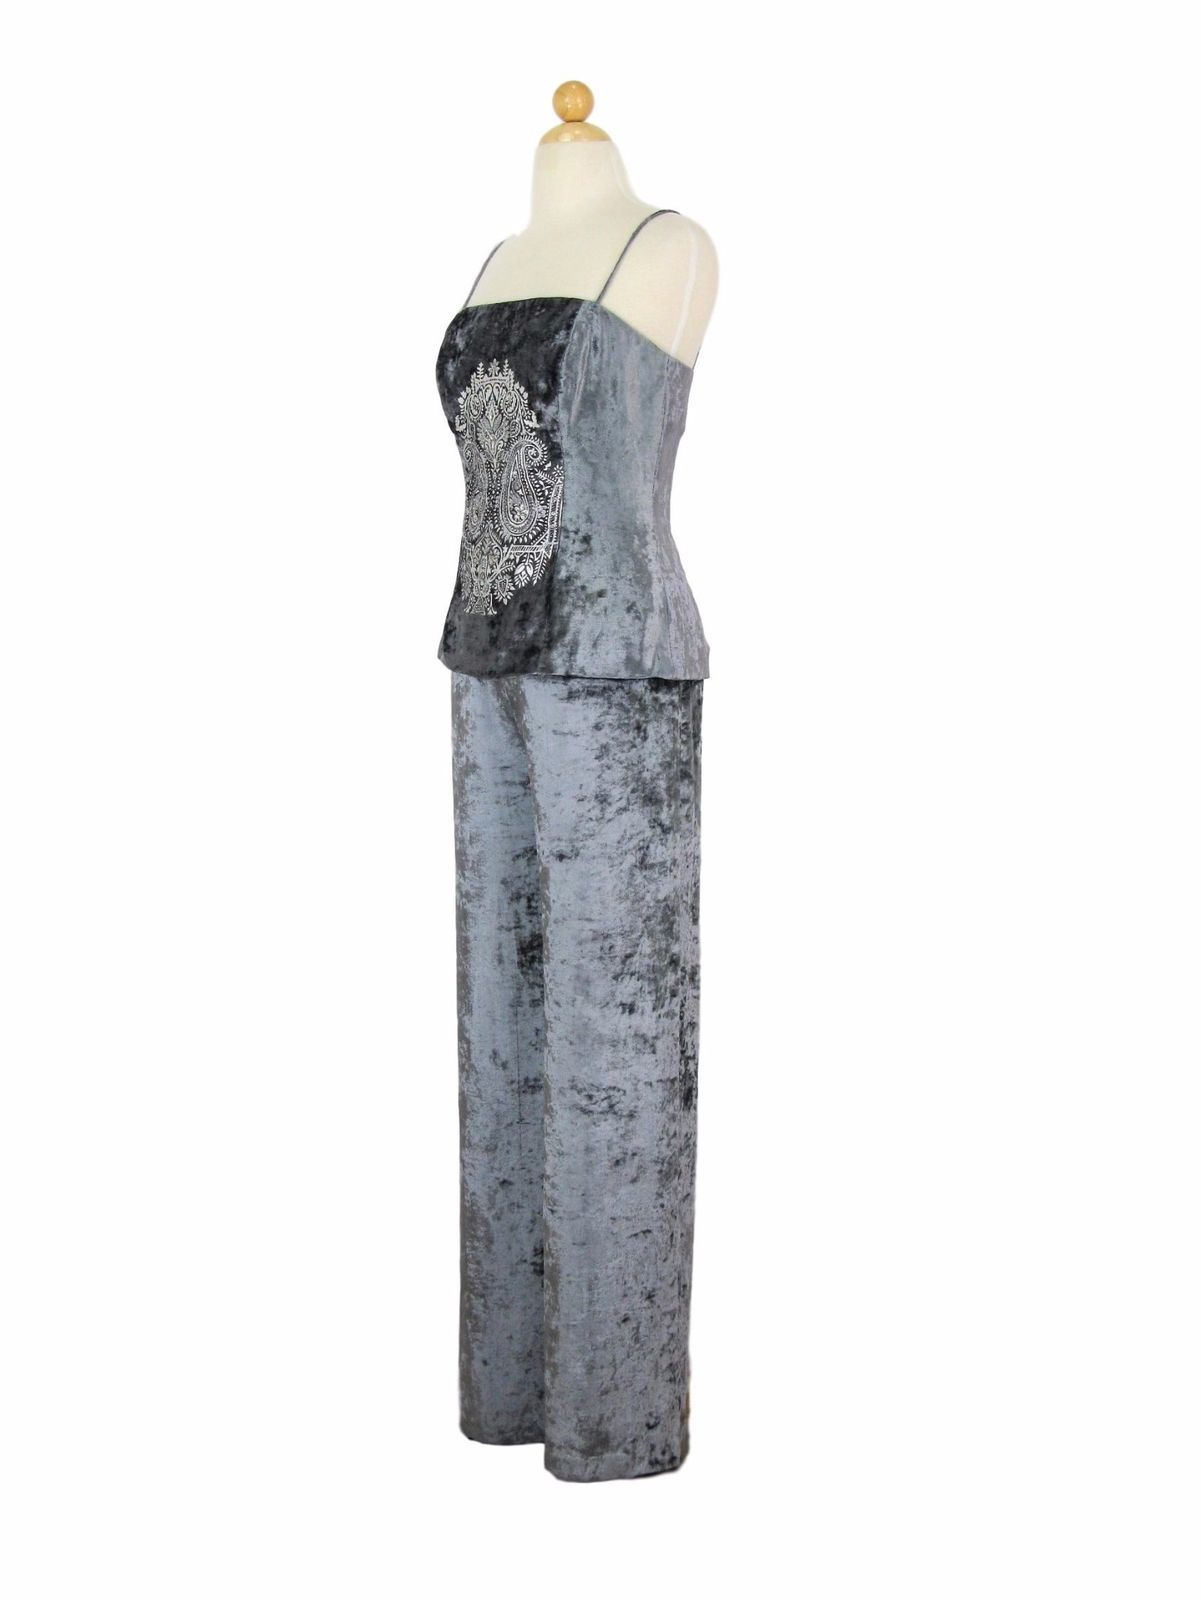 Palazzo Pants & Camisole Top Donna Morgan Crushed Silver Velvet 4 $198 MSRP